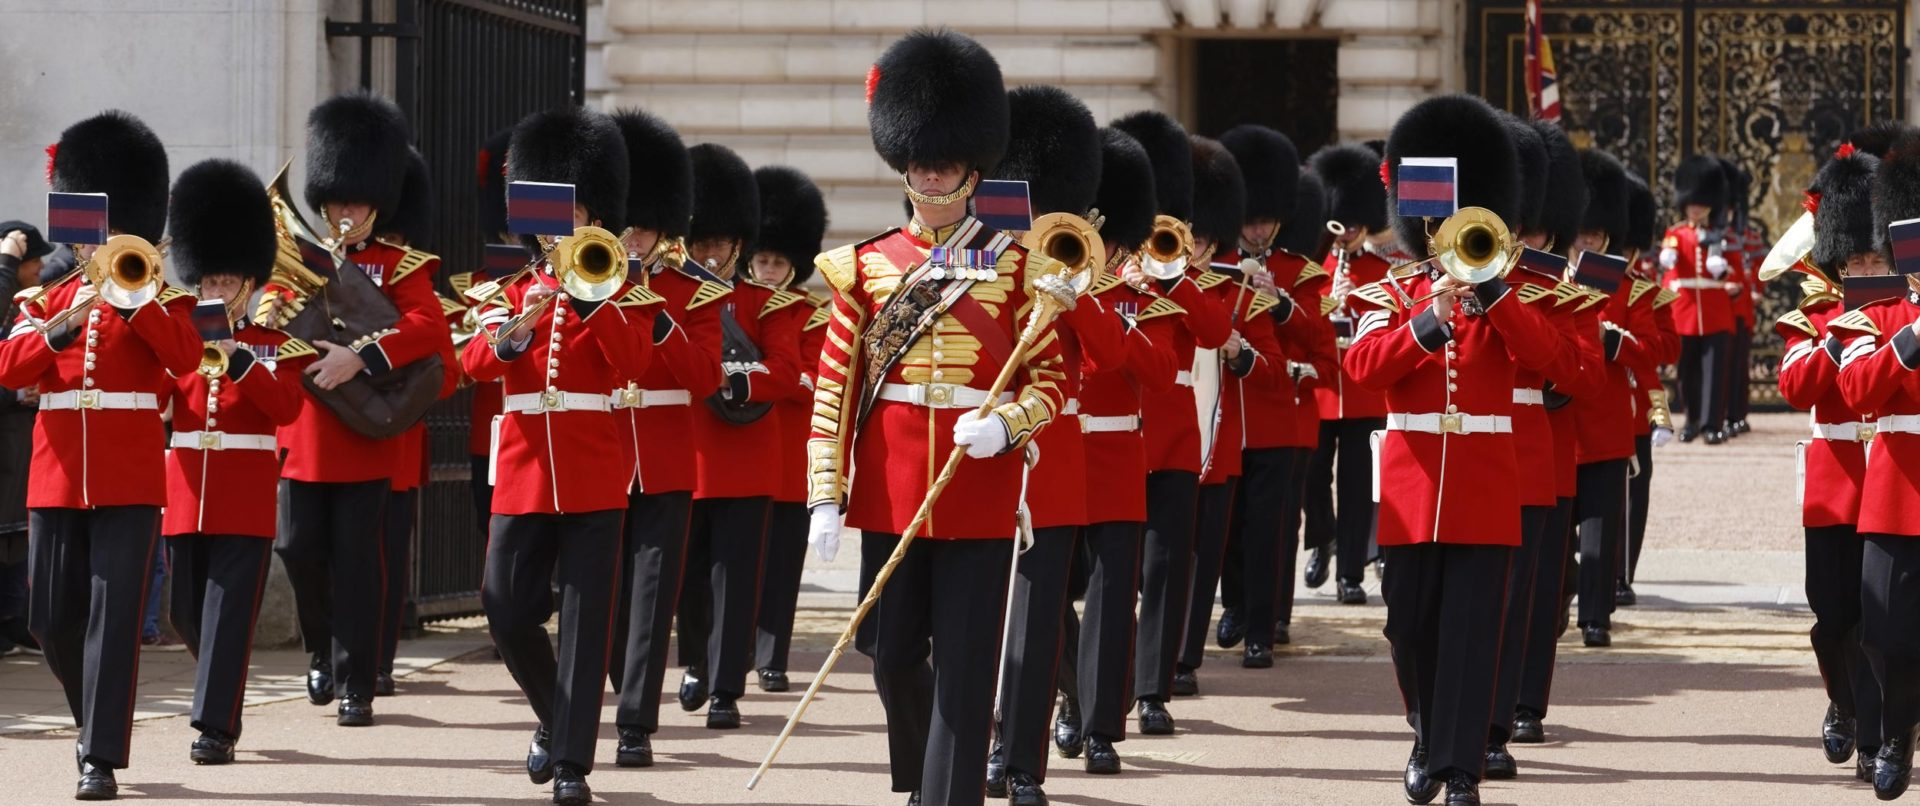 Full-day-london-tour-guards